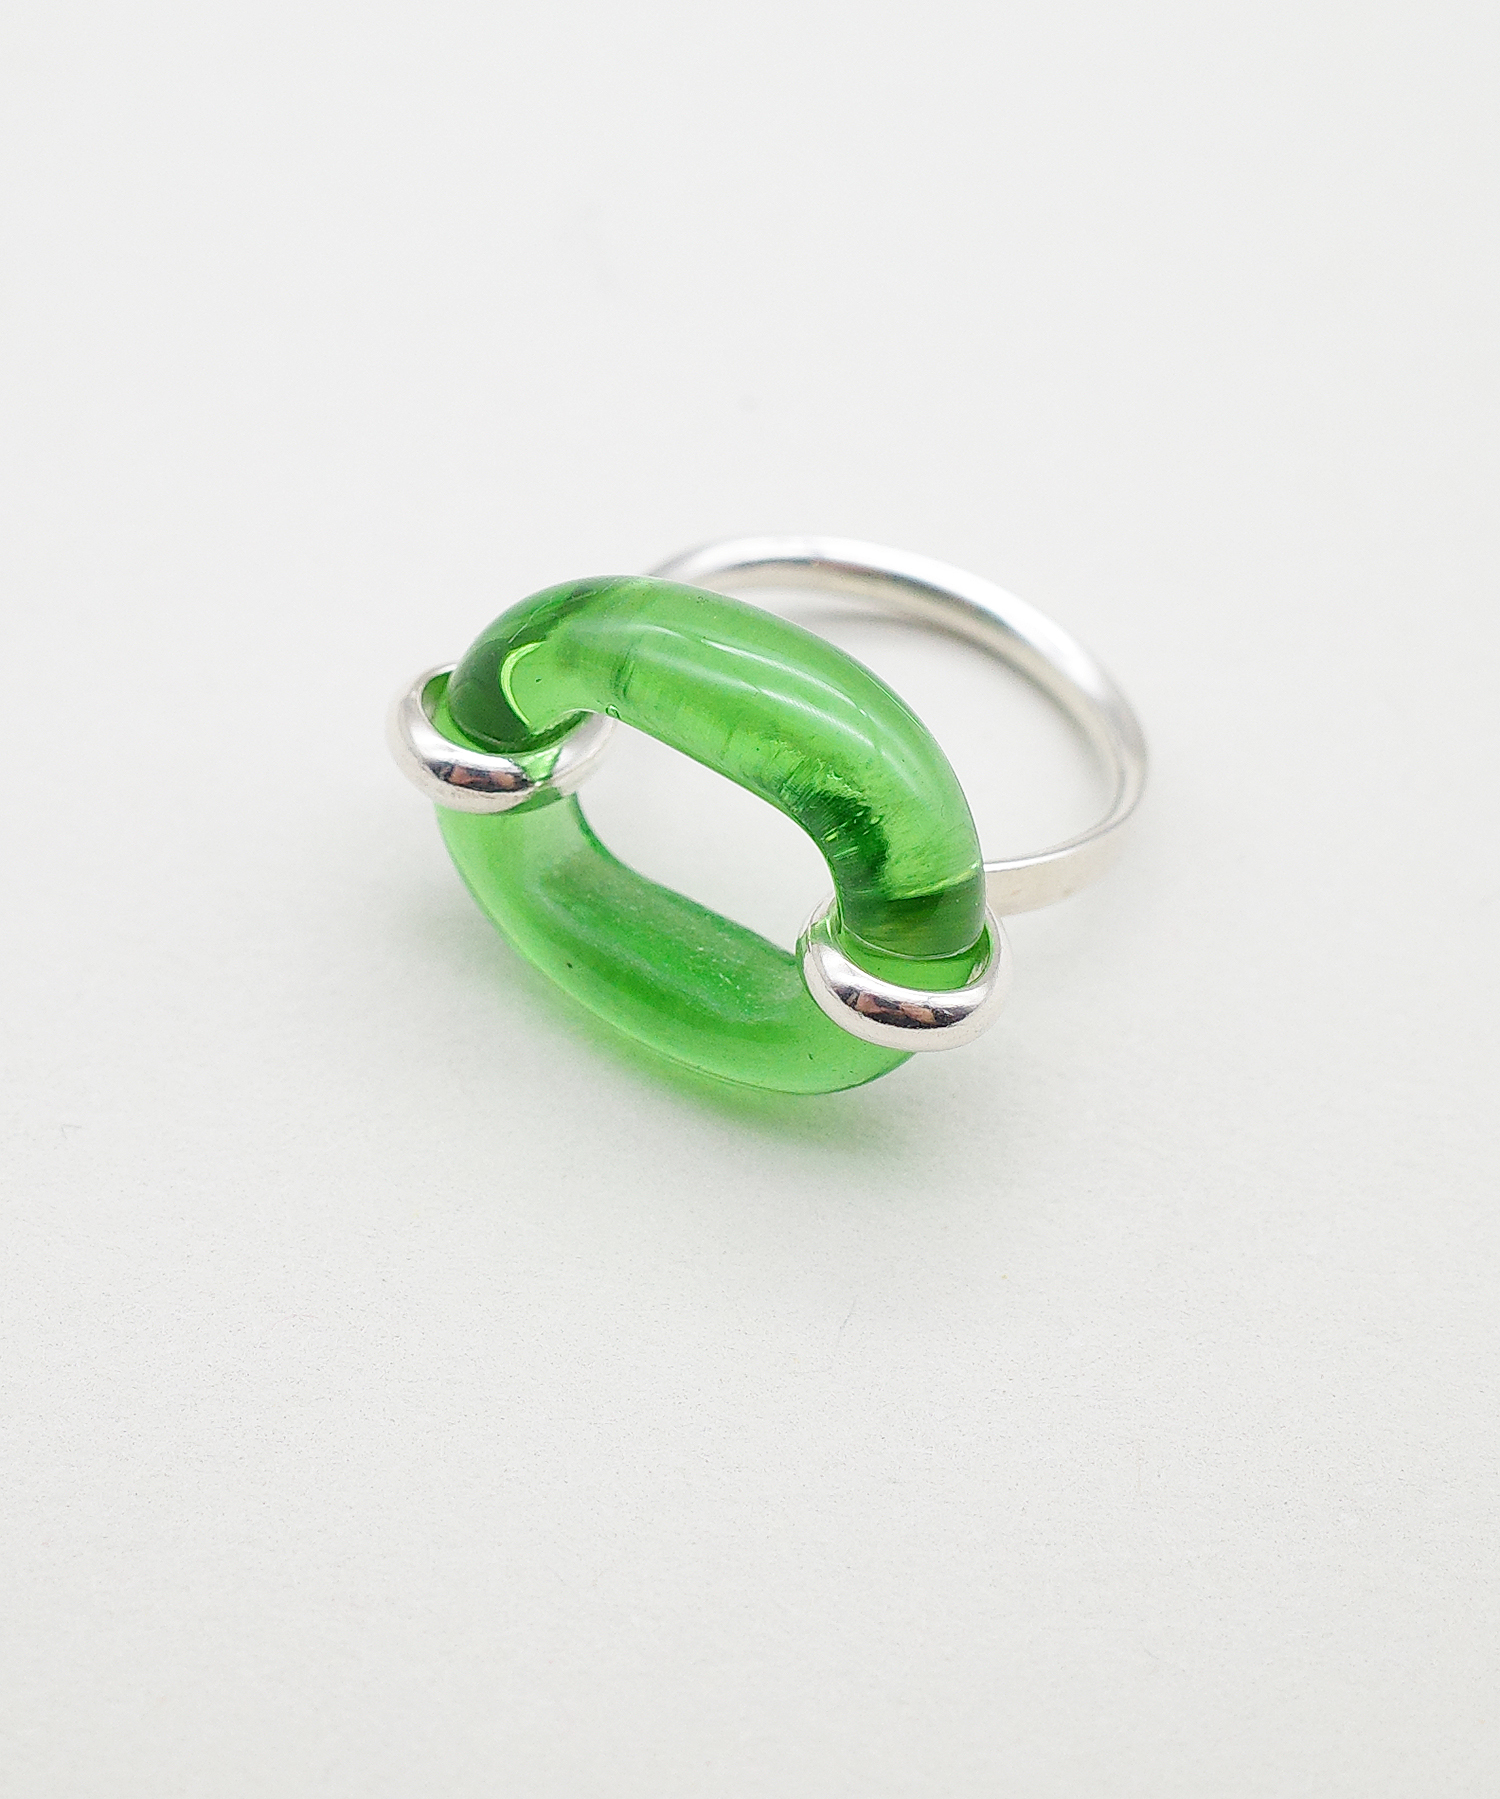 【CLED / クレッド】IN THE LOOP Ring / リング / Sterling silver×Green Forest